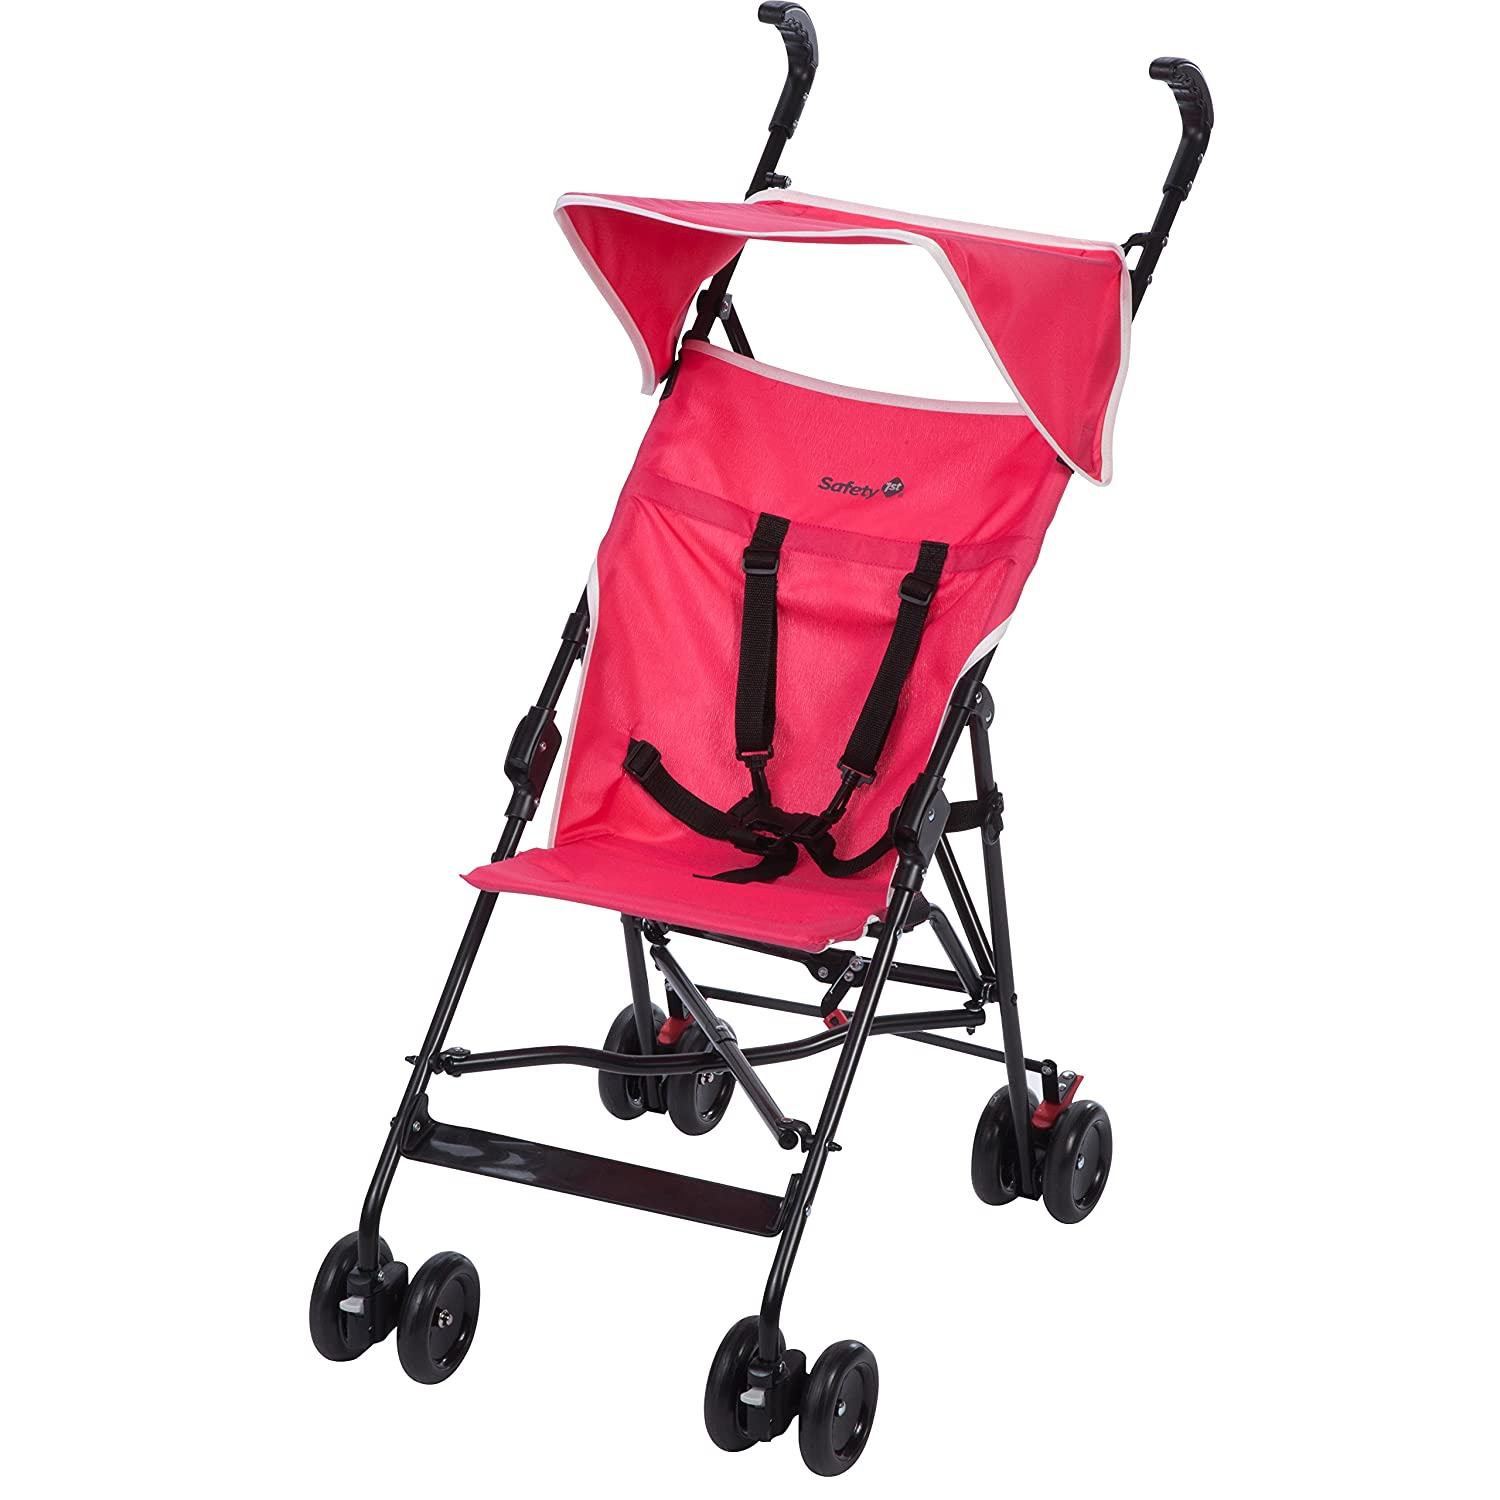 Safety 1st Poussette Canne Fixe Peps + Canopy Blue Moon DORA3 1182512000